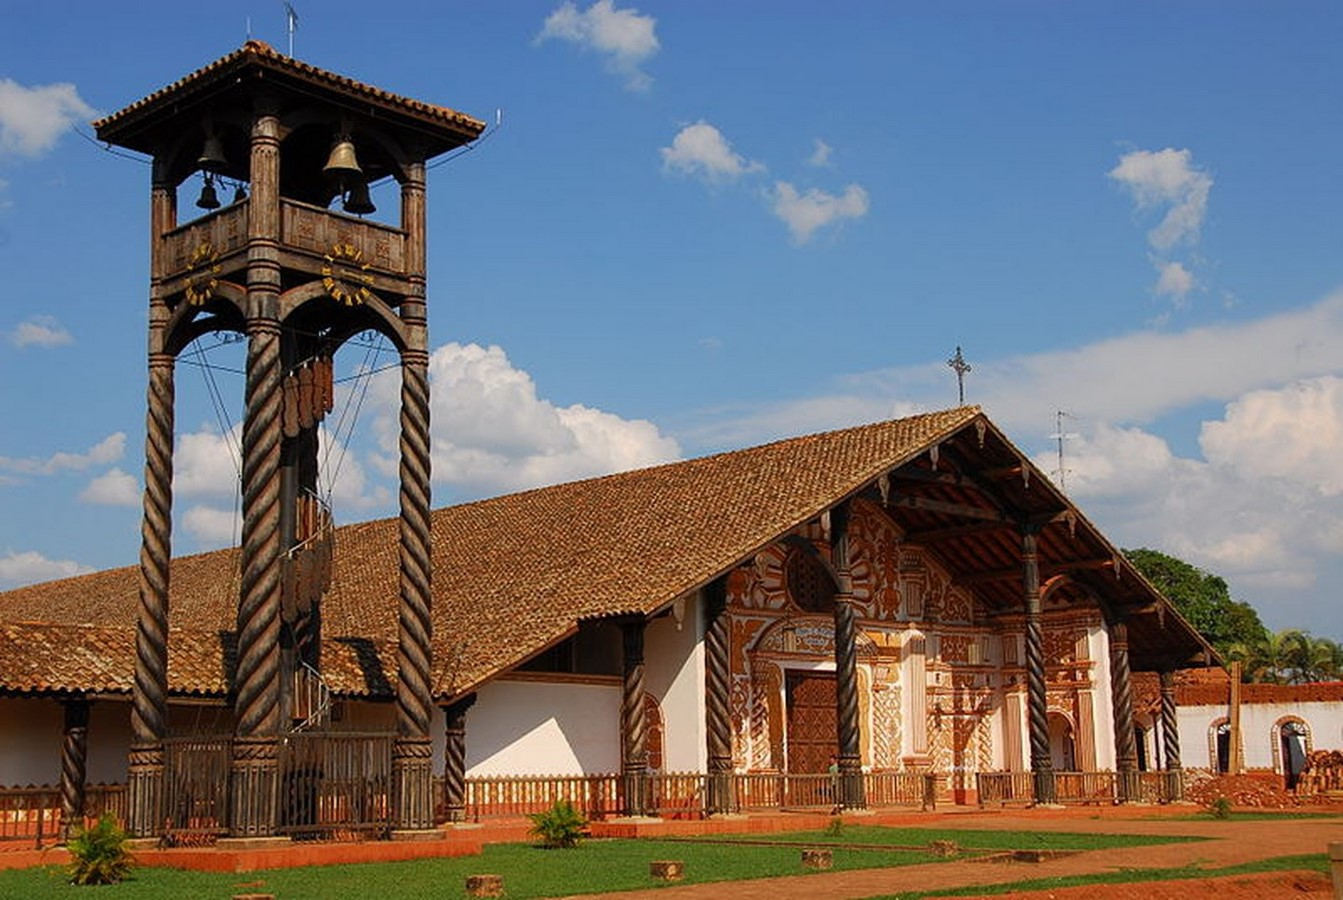 Jesuit Missions of Chiquitos - Sheet1